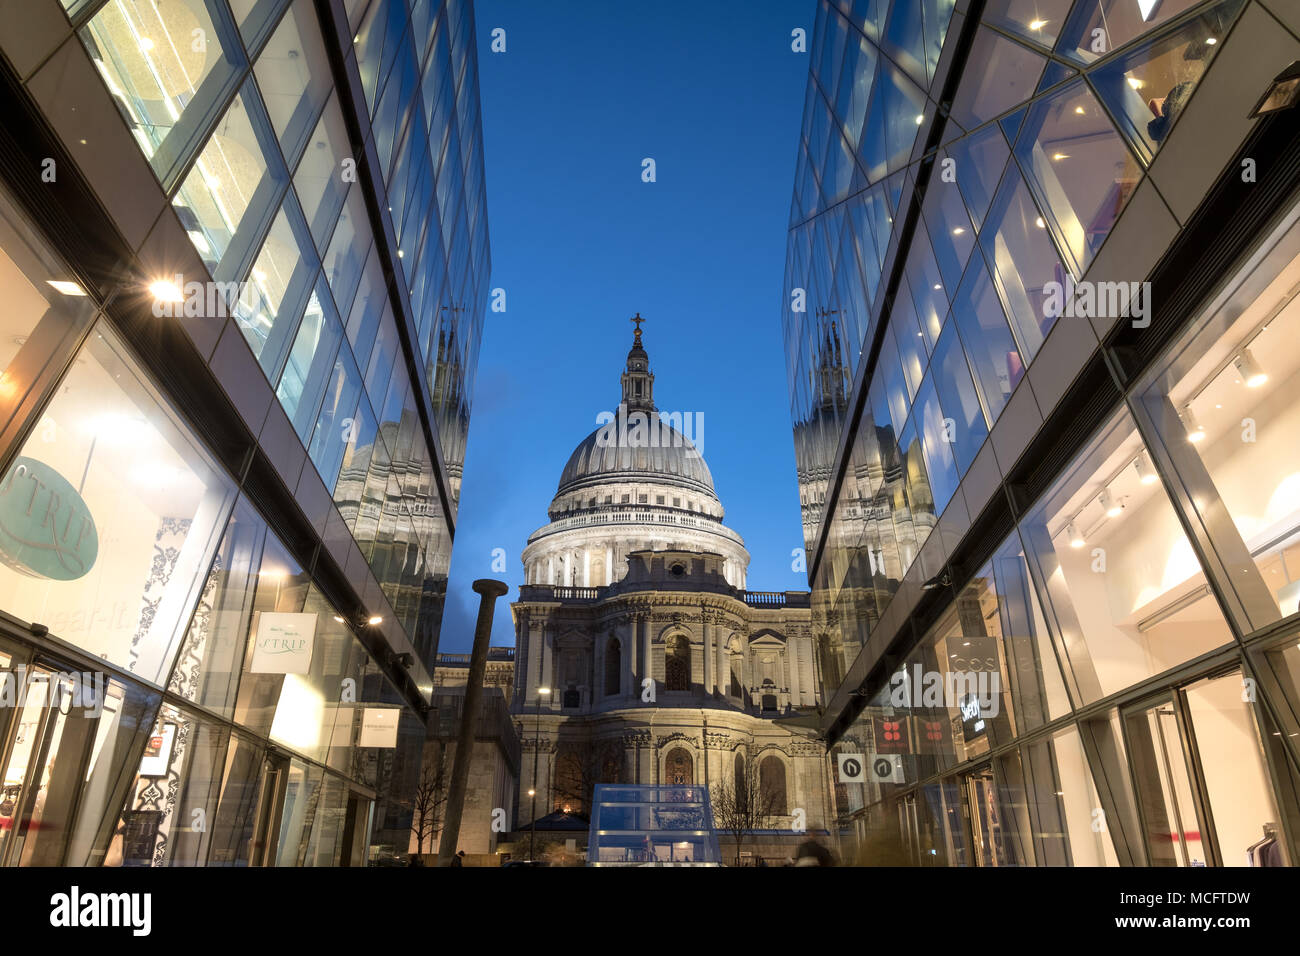 View of the dome of St Paul's Cathedral. Photographed at Blue Hour from One New Change, London UK Stock Photo